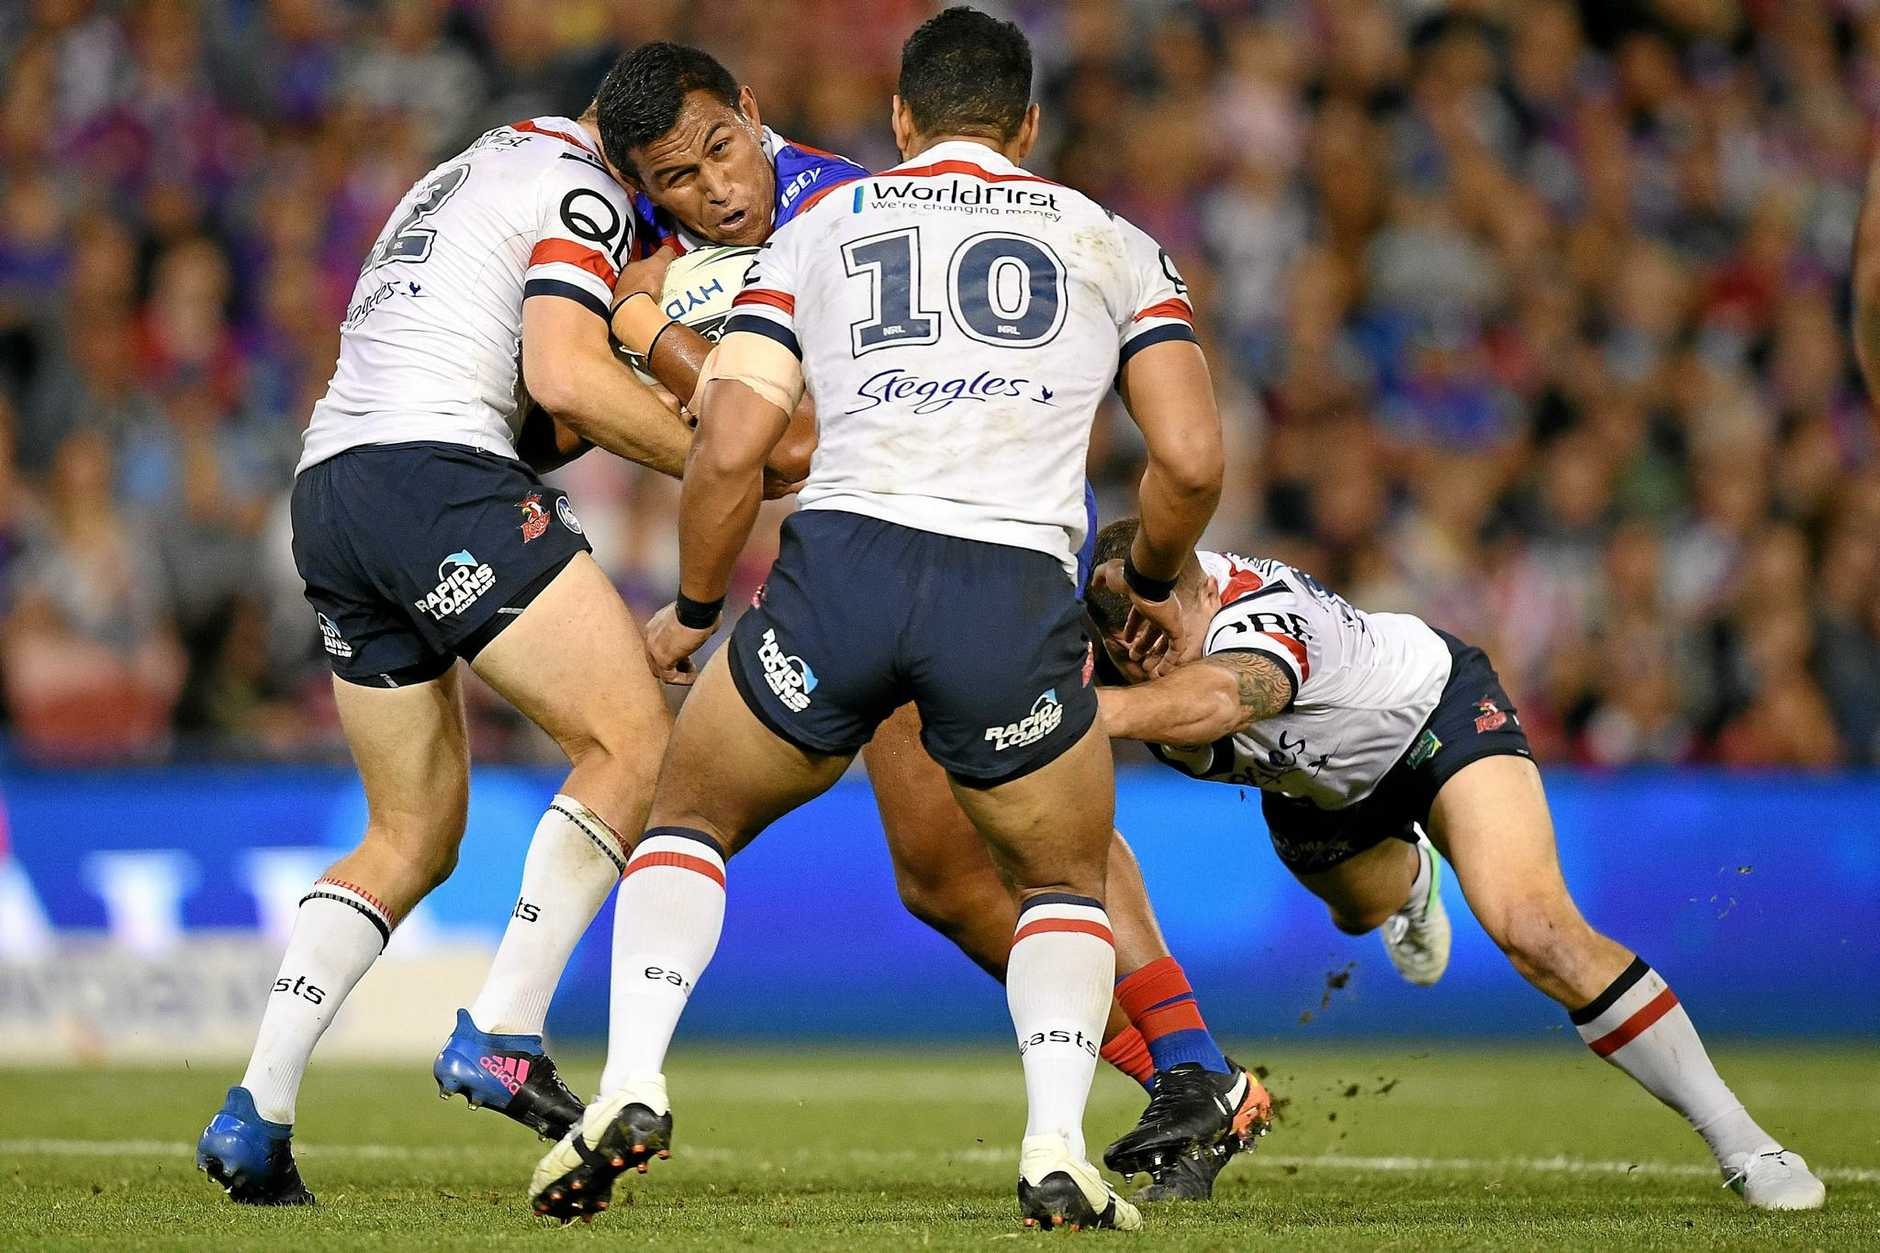 Daniel Safiti of the Knights is tackled by Mitchell Aubusson (left), Issac Liu and Paul Carter of the Roosters.